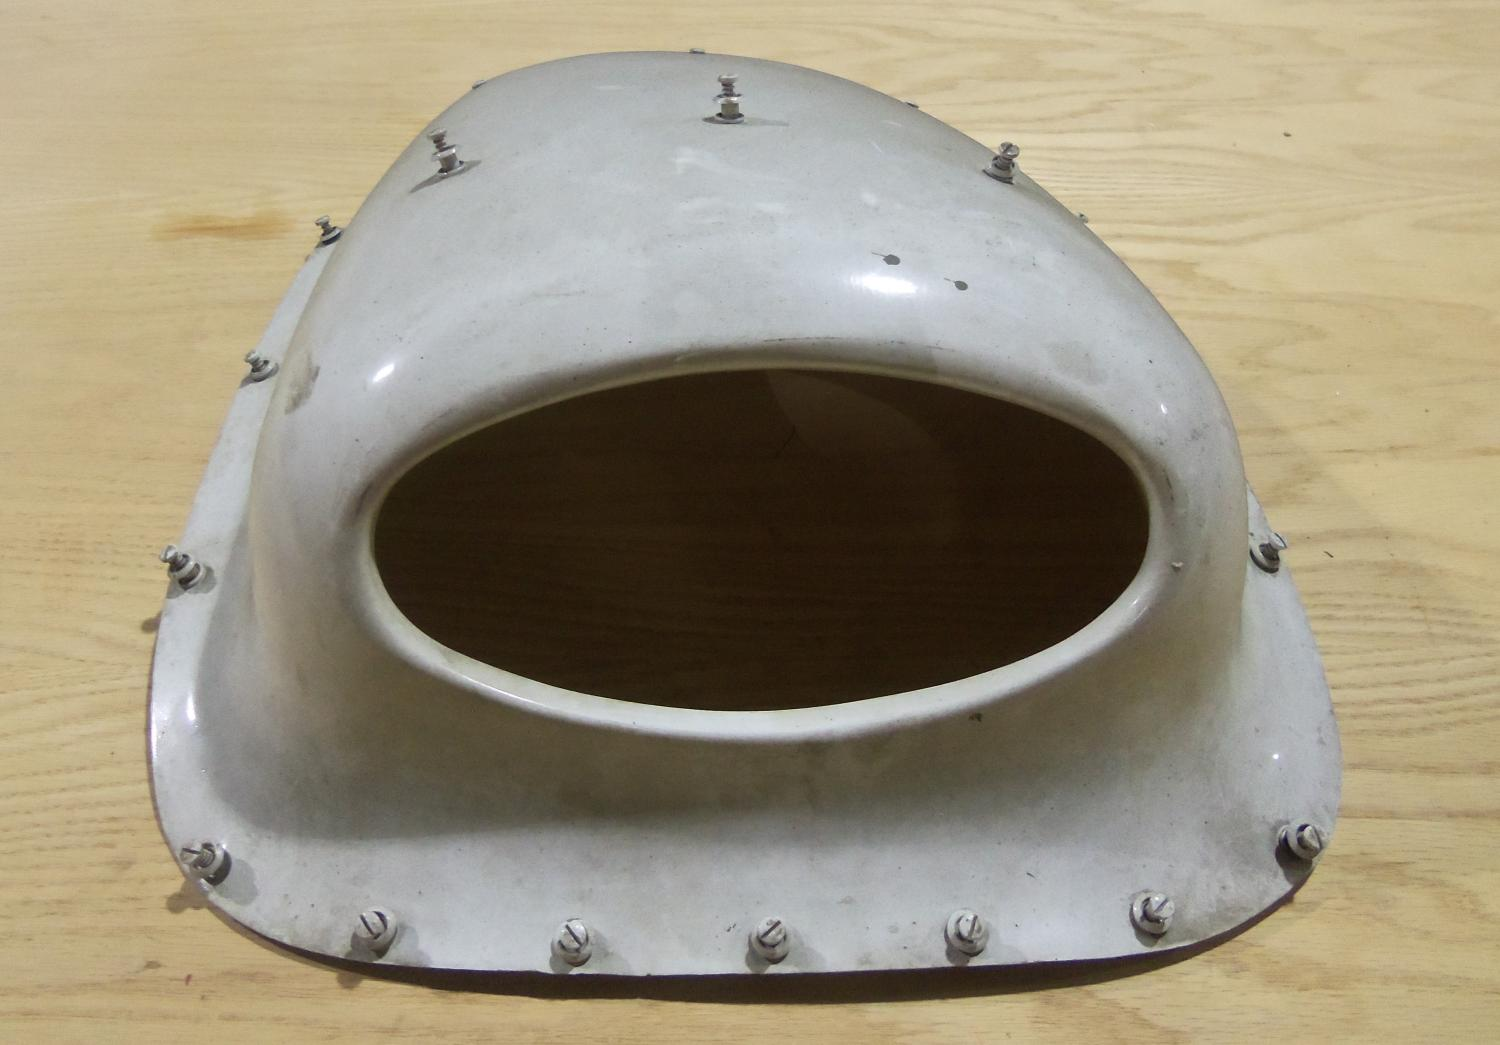 PIPER APACHE OR AZTEC COWLING AIR SCOOPS, LEFT & RIGHT PAIR